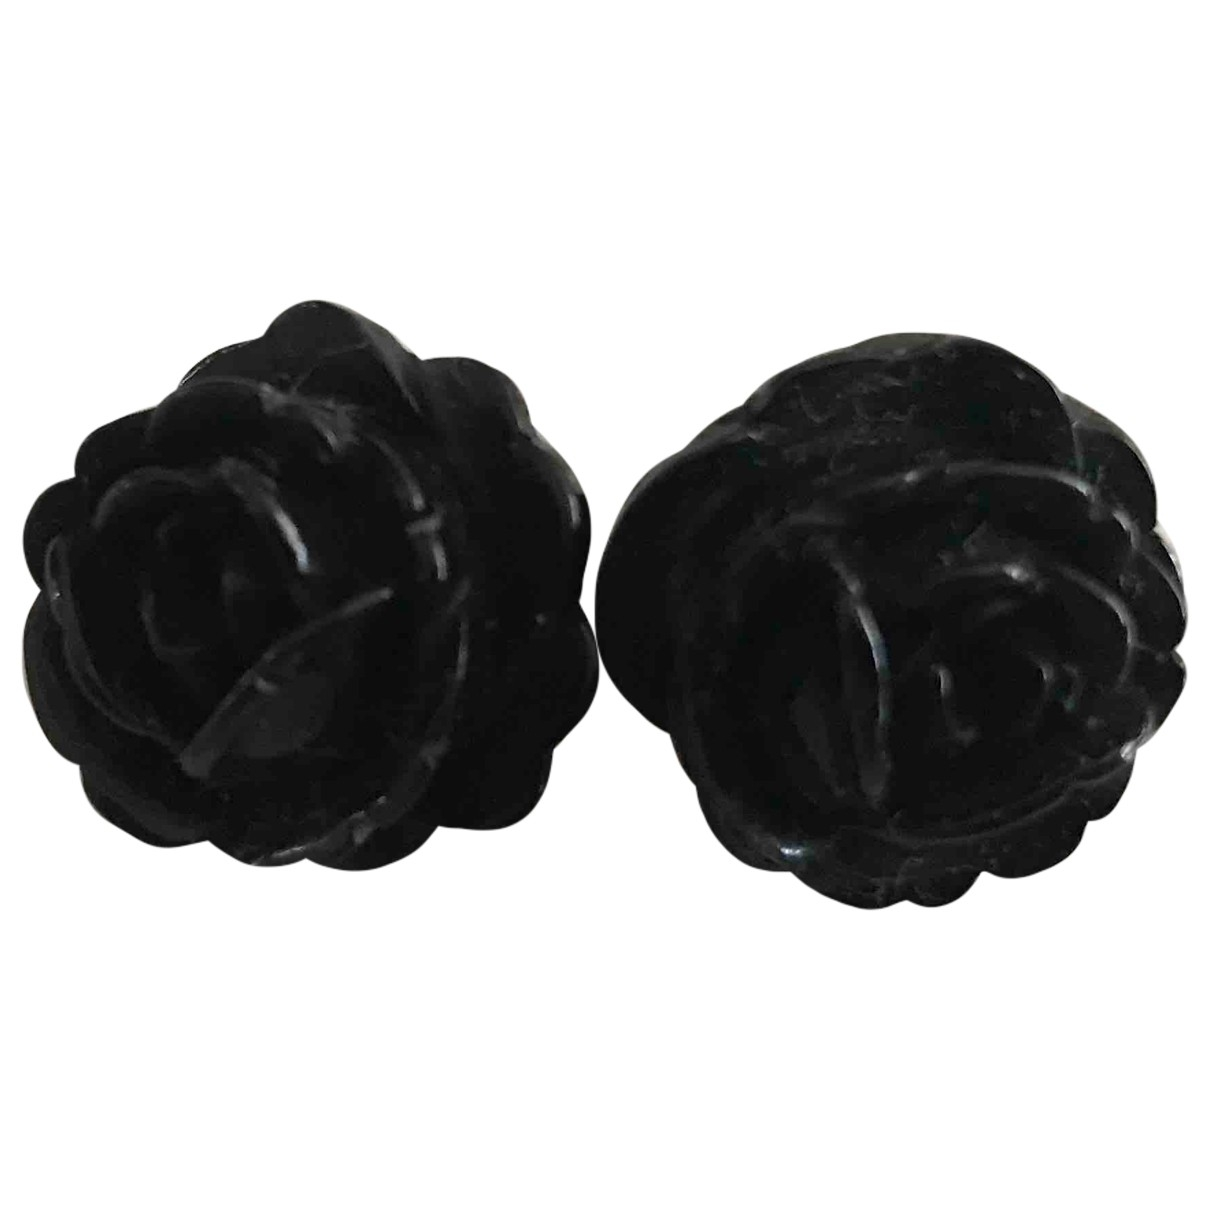 Uterque \N Black Ceramic Earrings for Women \N